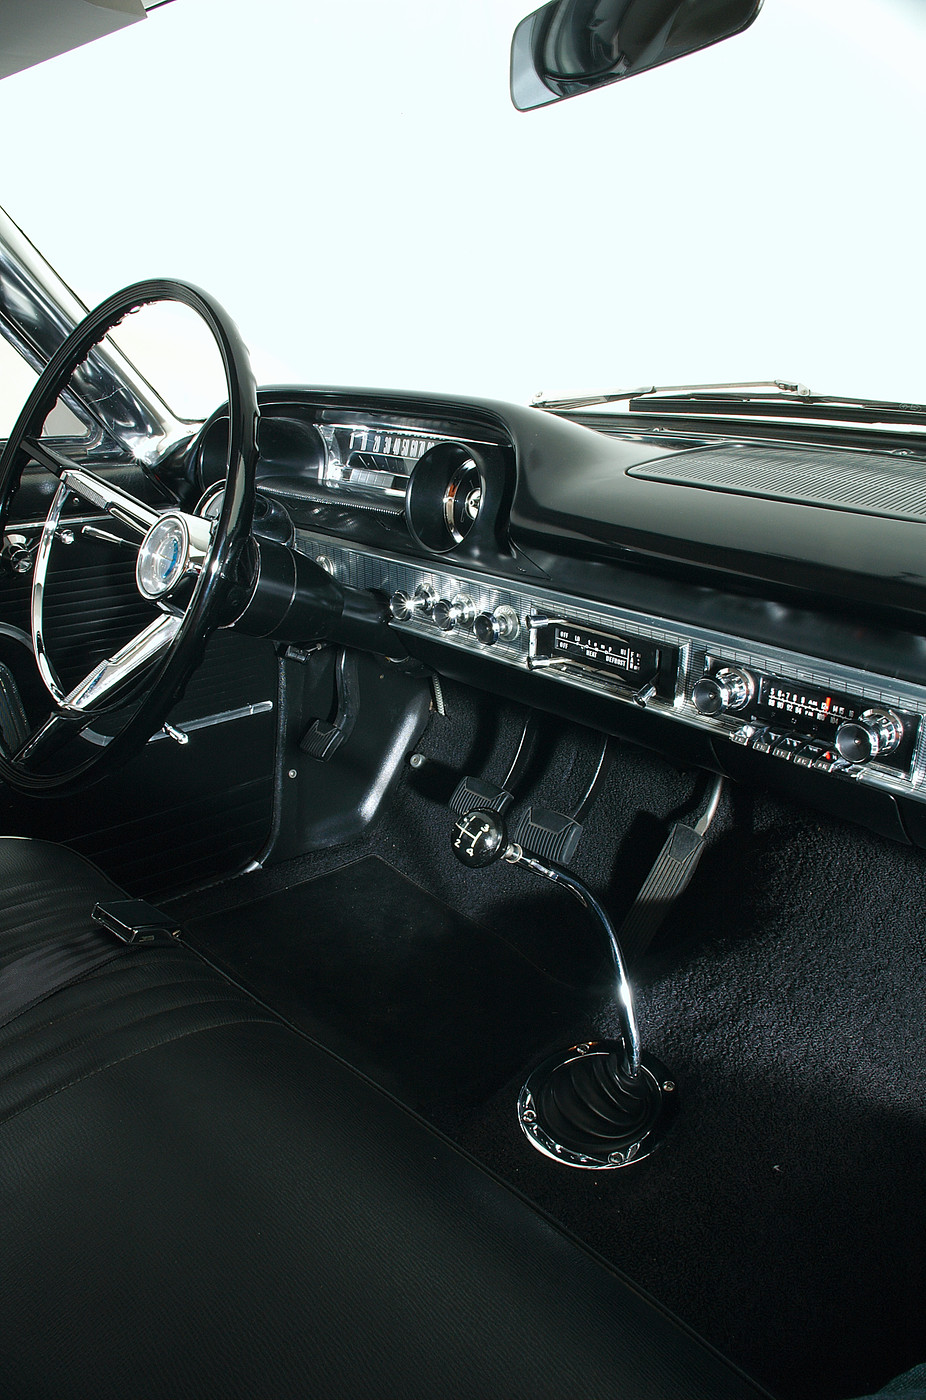 1963 Ford Galaxie 500 XL 427 R-code passenger-side vertical instrument panel view